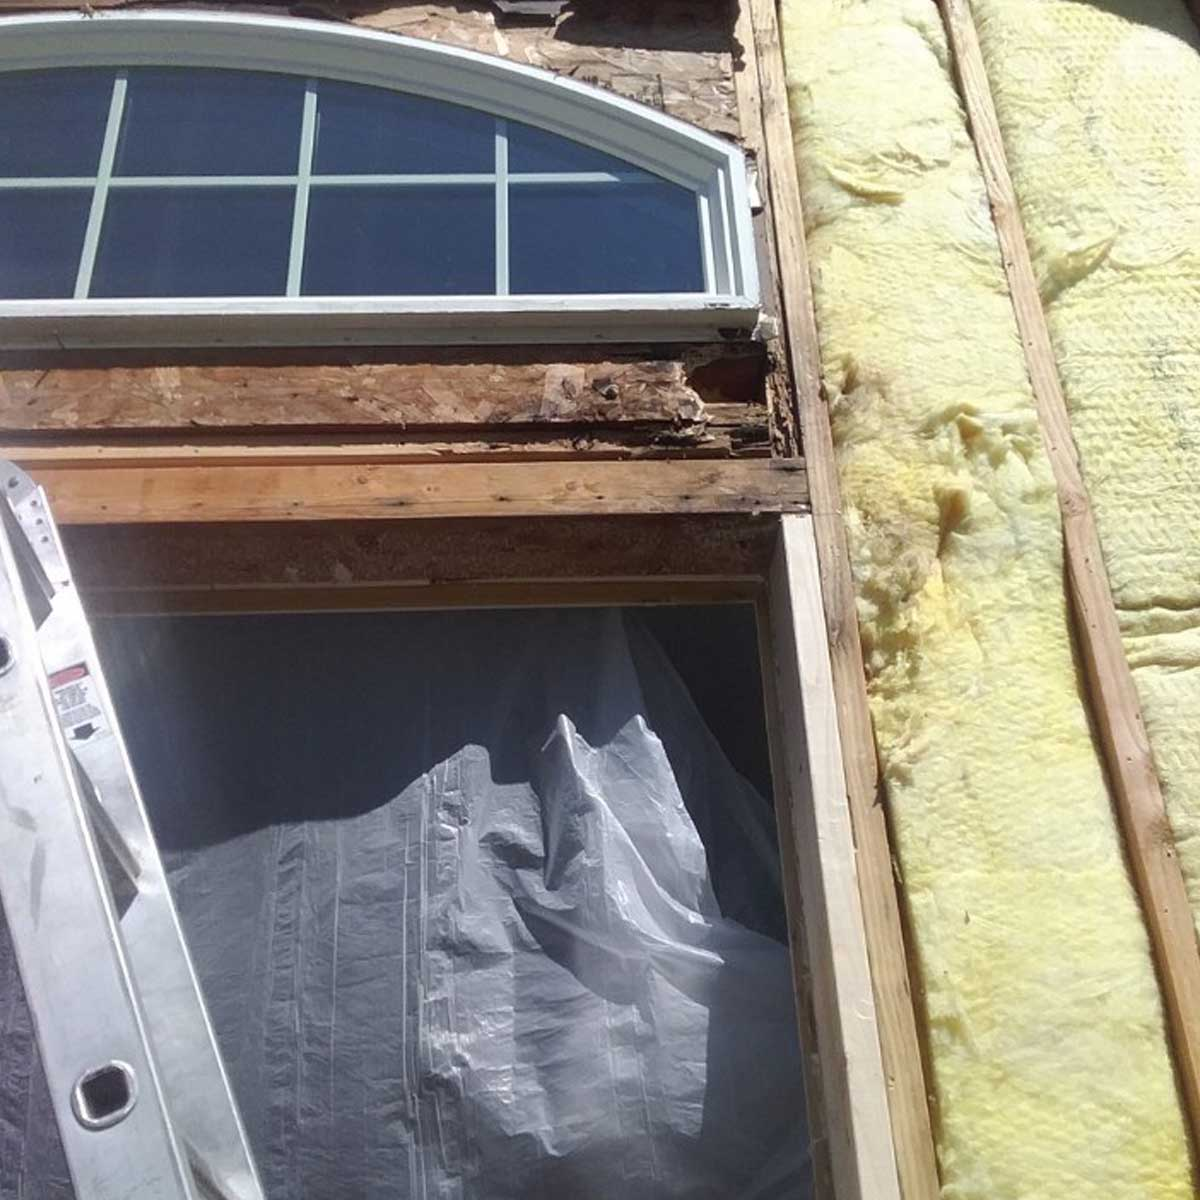 Removing Wood Around Window To Discover Damage From Window Leak